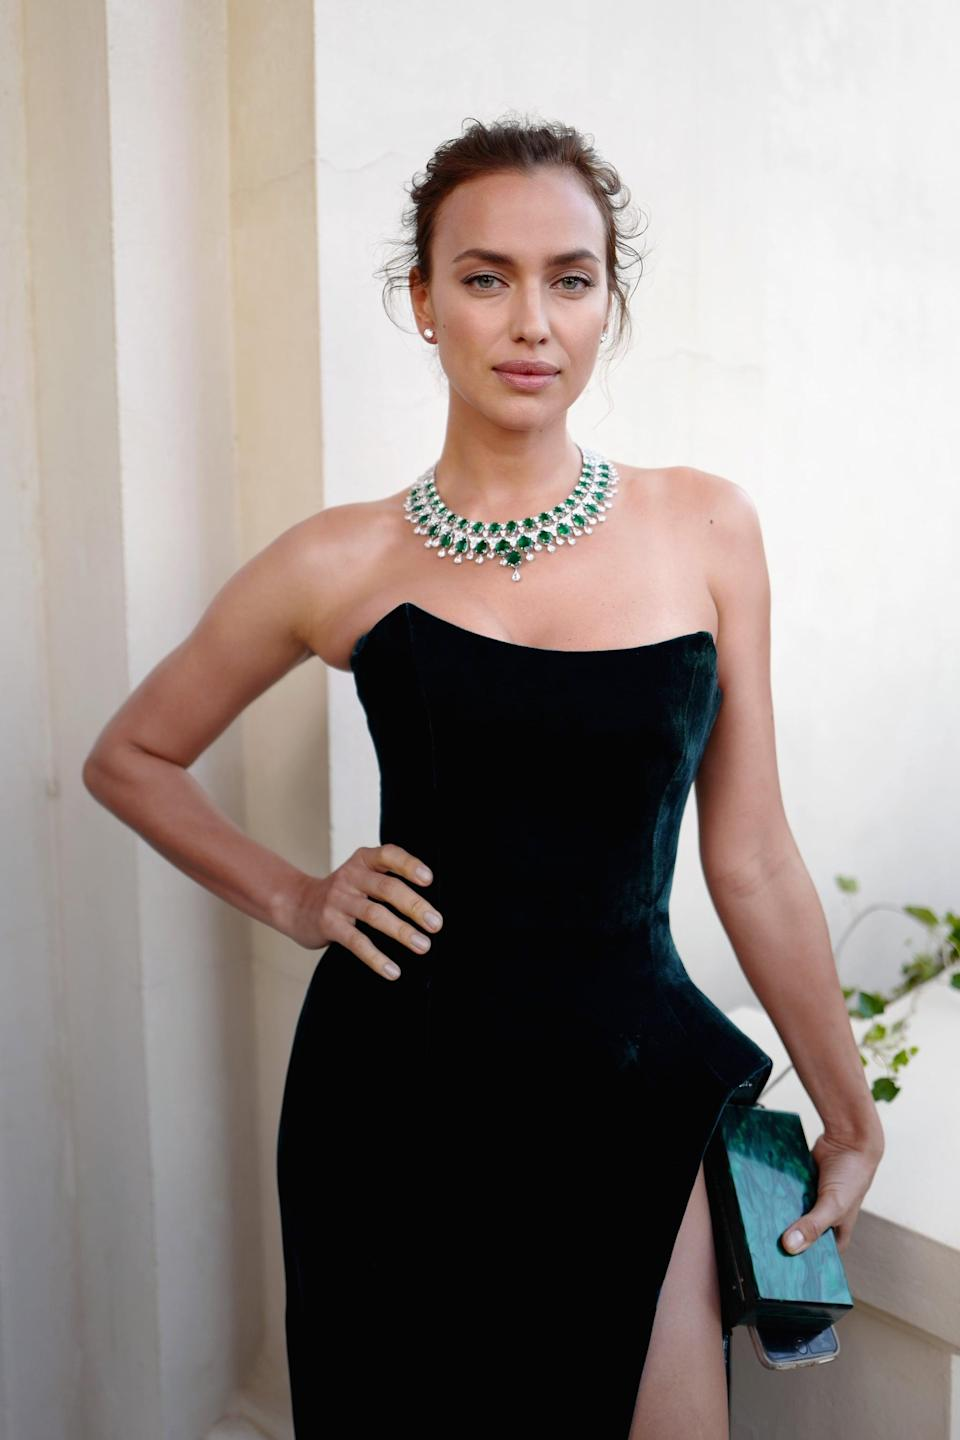 """<p>Since his split from Kim, <a href=""""https://www.popsugar.com/celebrity/are-kanye-west-irina-shayk-dating-48365319"""" class=""""link rapid-noclick-resp"""" rel=""""nofollow noopener"""" target=""""_blank"""" data-ylk=""""slk:Kanye appears to have moved on with Irina Shayk"""">Kanye appears to have moved on with Irina Shayk</a>. After much speculation, the two were spotted on a French getaway for Kanye's 44th birthday in June 2021. According to <b>Us Weekly</b>, <a href=""""https://www.usmagazine.com/celebrity-news/news/kanye-west-is-dating-irina-shayk-amid-kim-kardashian-divorce/?utm_source=popsugar.com&amp;utm_medium=referral&amp;utm_campaign=pubexchange_article"""" class=""""link rapid-noclick-resp"""" rel=""""nofollow noopener"""" target=""""_blank"""" data-ylk=""""slk:the two are dating"""">the two are dating</a> and """"getting to know one another. """"He's always thought she was beautiful and they're both looking forward to seeing where this goes,"""" a source said. </p> <p><a href=""""https://www.popsugar.com/celebrity/kanye-west-and-irina-shayk-relationship-timeline-48367801"""" class=""""link rapid-noclick-resp"""" rel=""""nofollow noopener"""" target=""""_blank"""" data-ylk=""""slk:Irina and Kanye have actually known each other"""">Irina and Kanye have actually known each other</a> for over a decade. She starred in his 2010 music video for """"Power"""" and modeled in his 2012 Yeezy Paris Fashion Week show.</p>"""